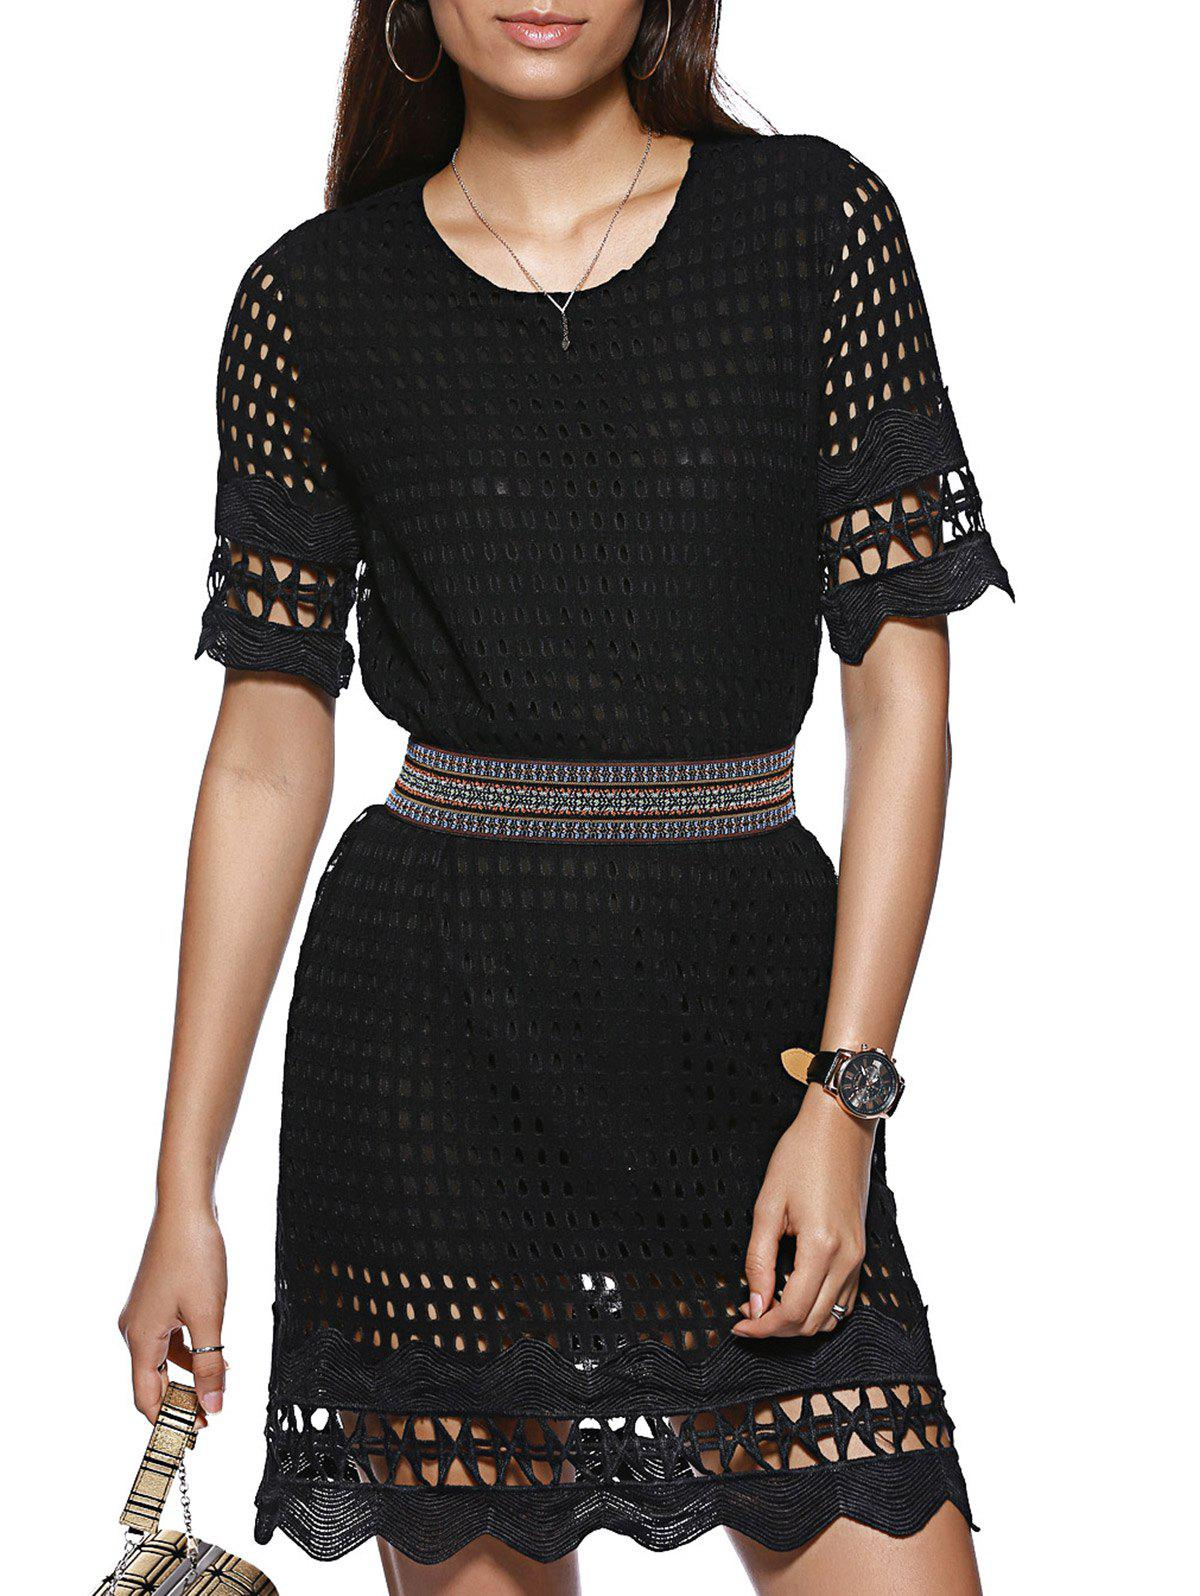 Fashionable Short Sleeve Scoop Collar Black Slimming Hollow Out Women's Dress - ONE SIZE(FIT SIZE XS TO M) BLACK